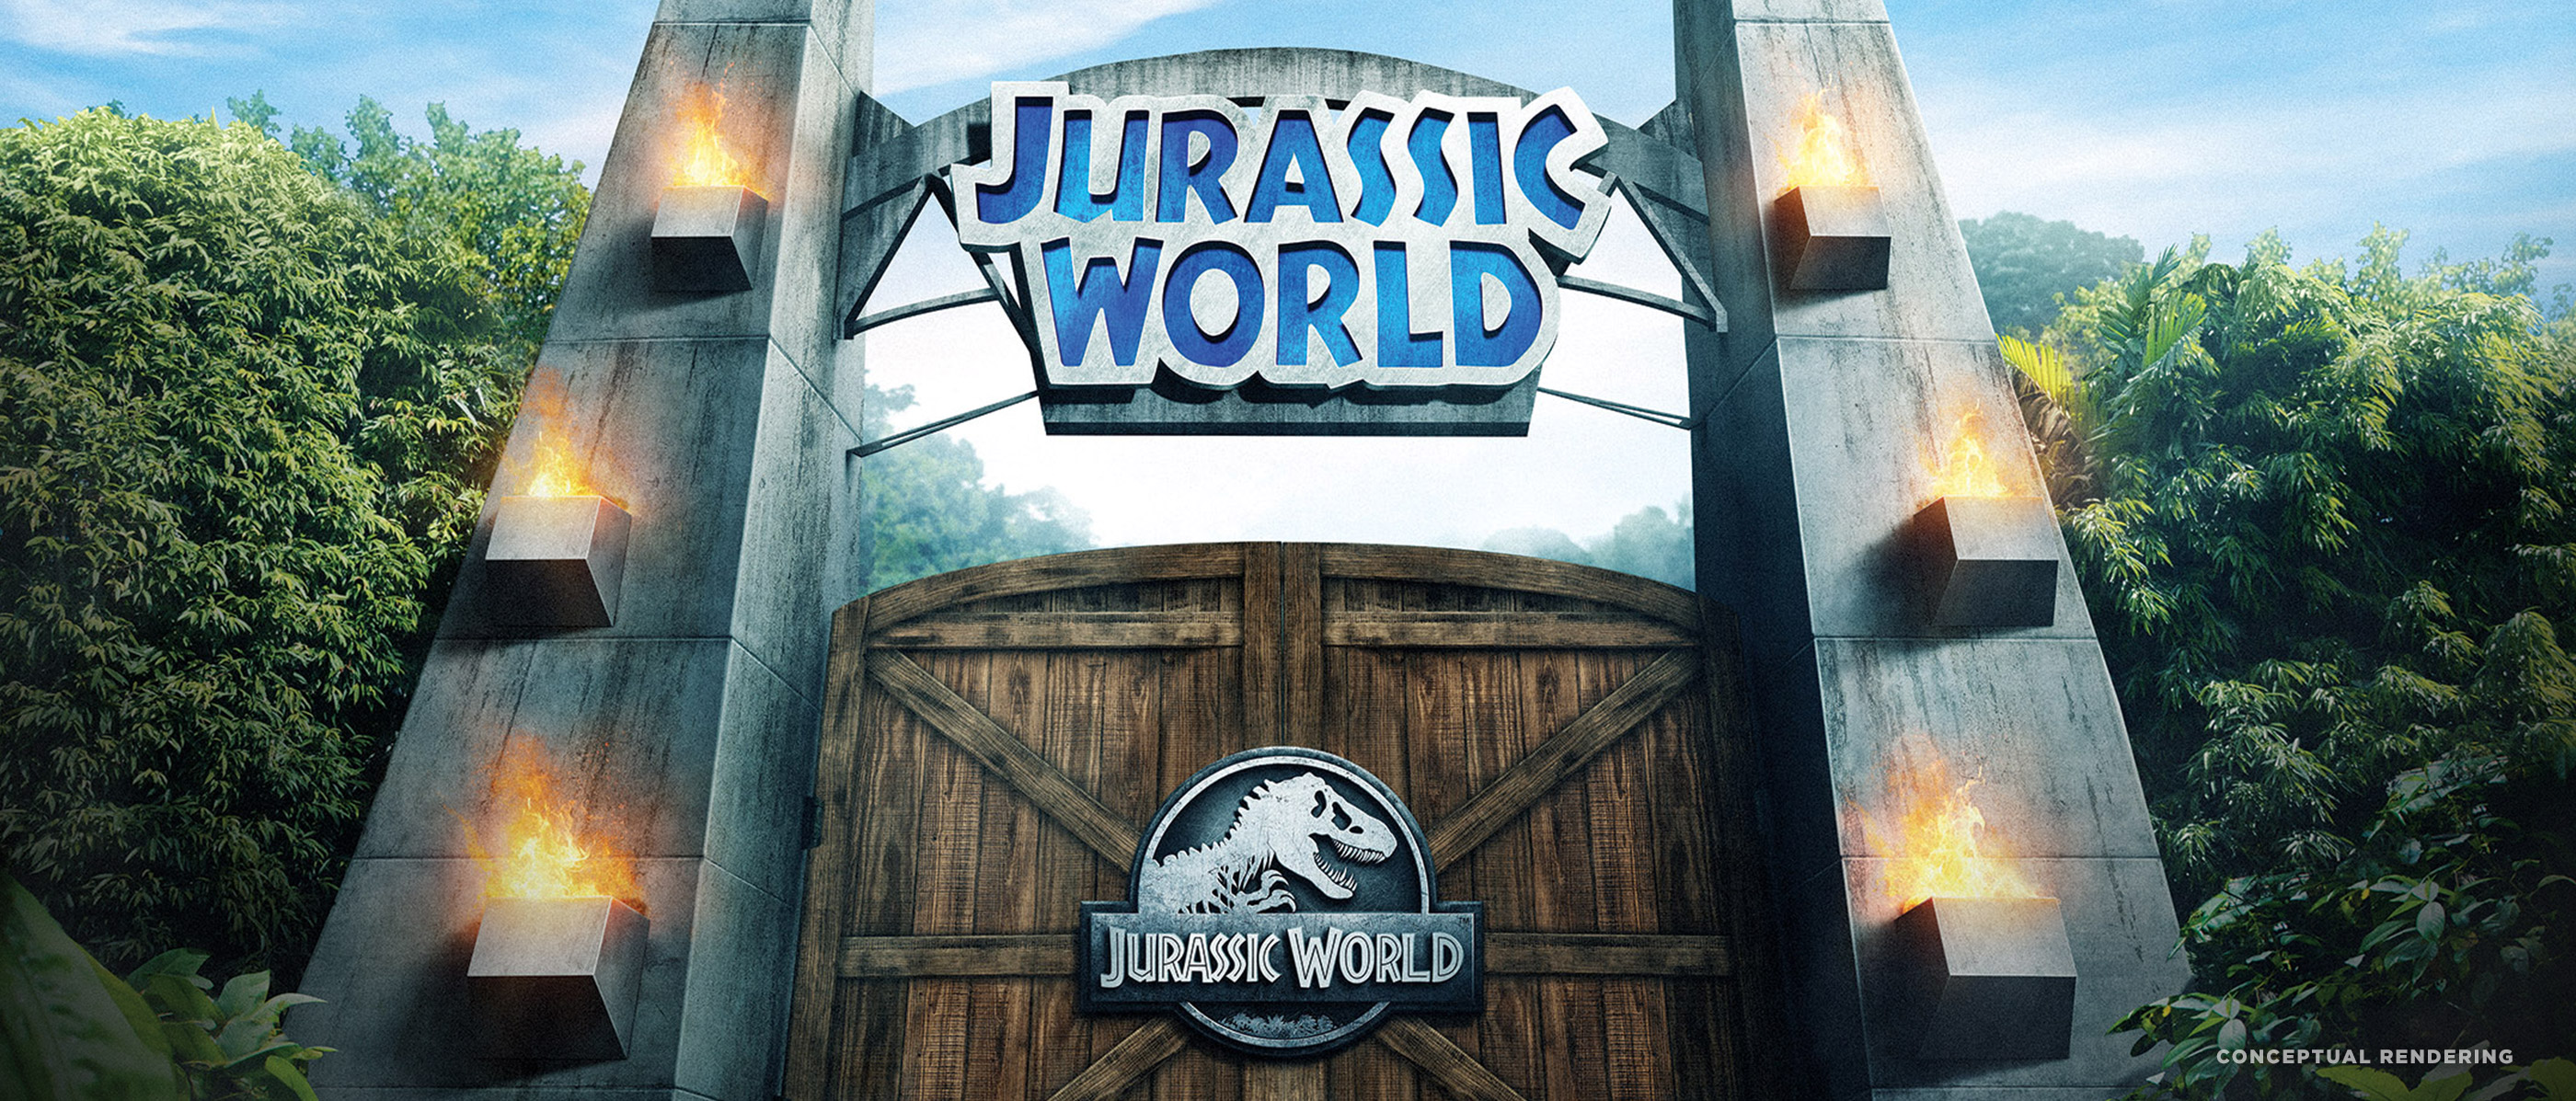 Jurassic Park World at Universal Studios Hollywood